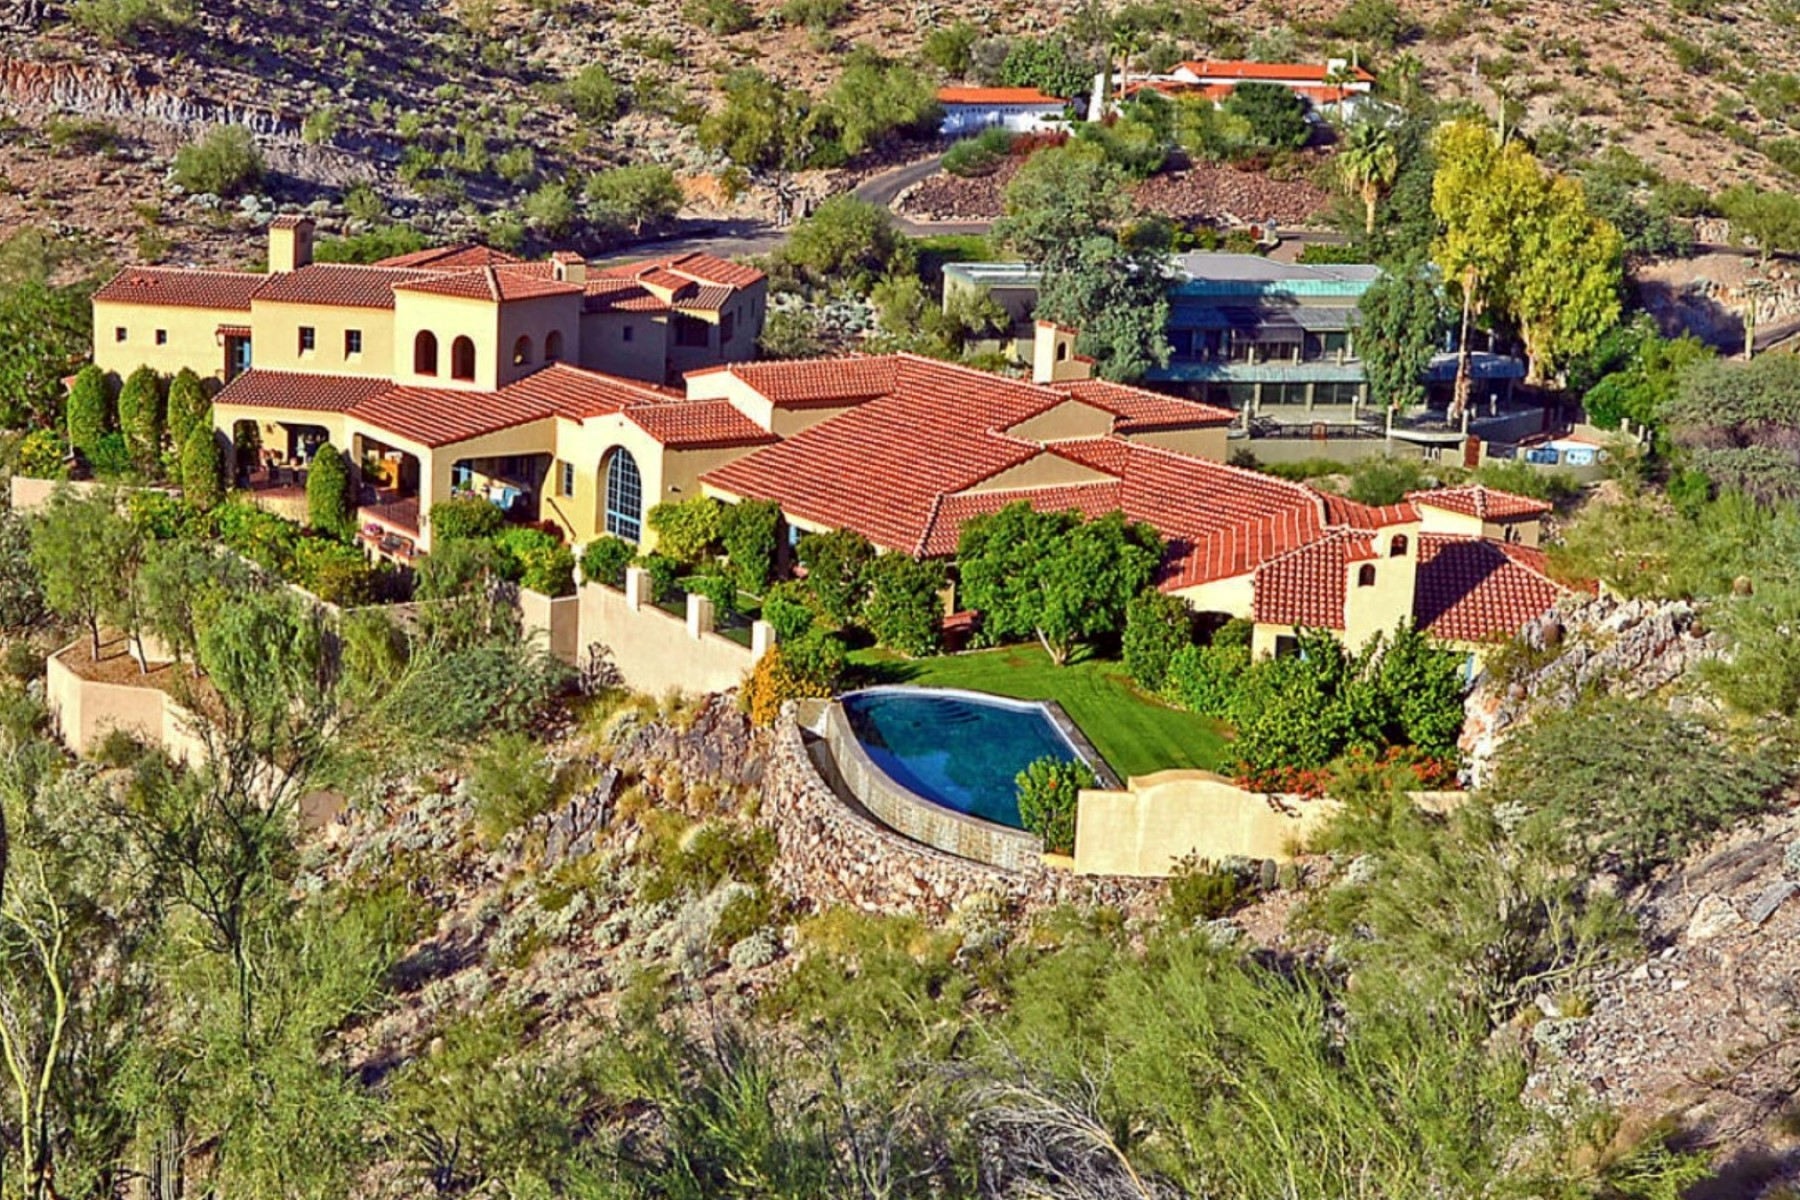 Maison unifamiliale pour l Vente à Spectacular Spanish Colonial Revival Styled Estate Home In Paradise Valley 4302 E Upper Ridge Way Paradise Valley, Arizona 85253 États-Unis